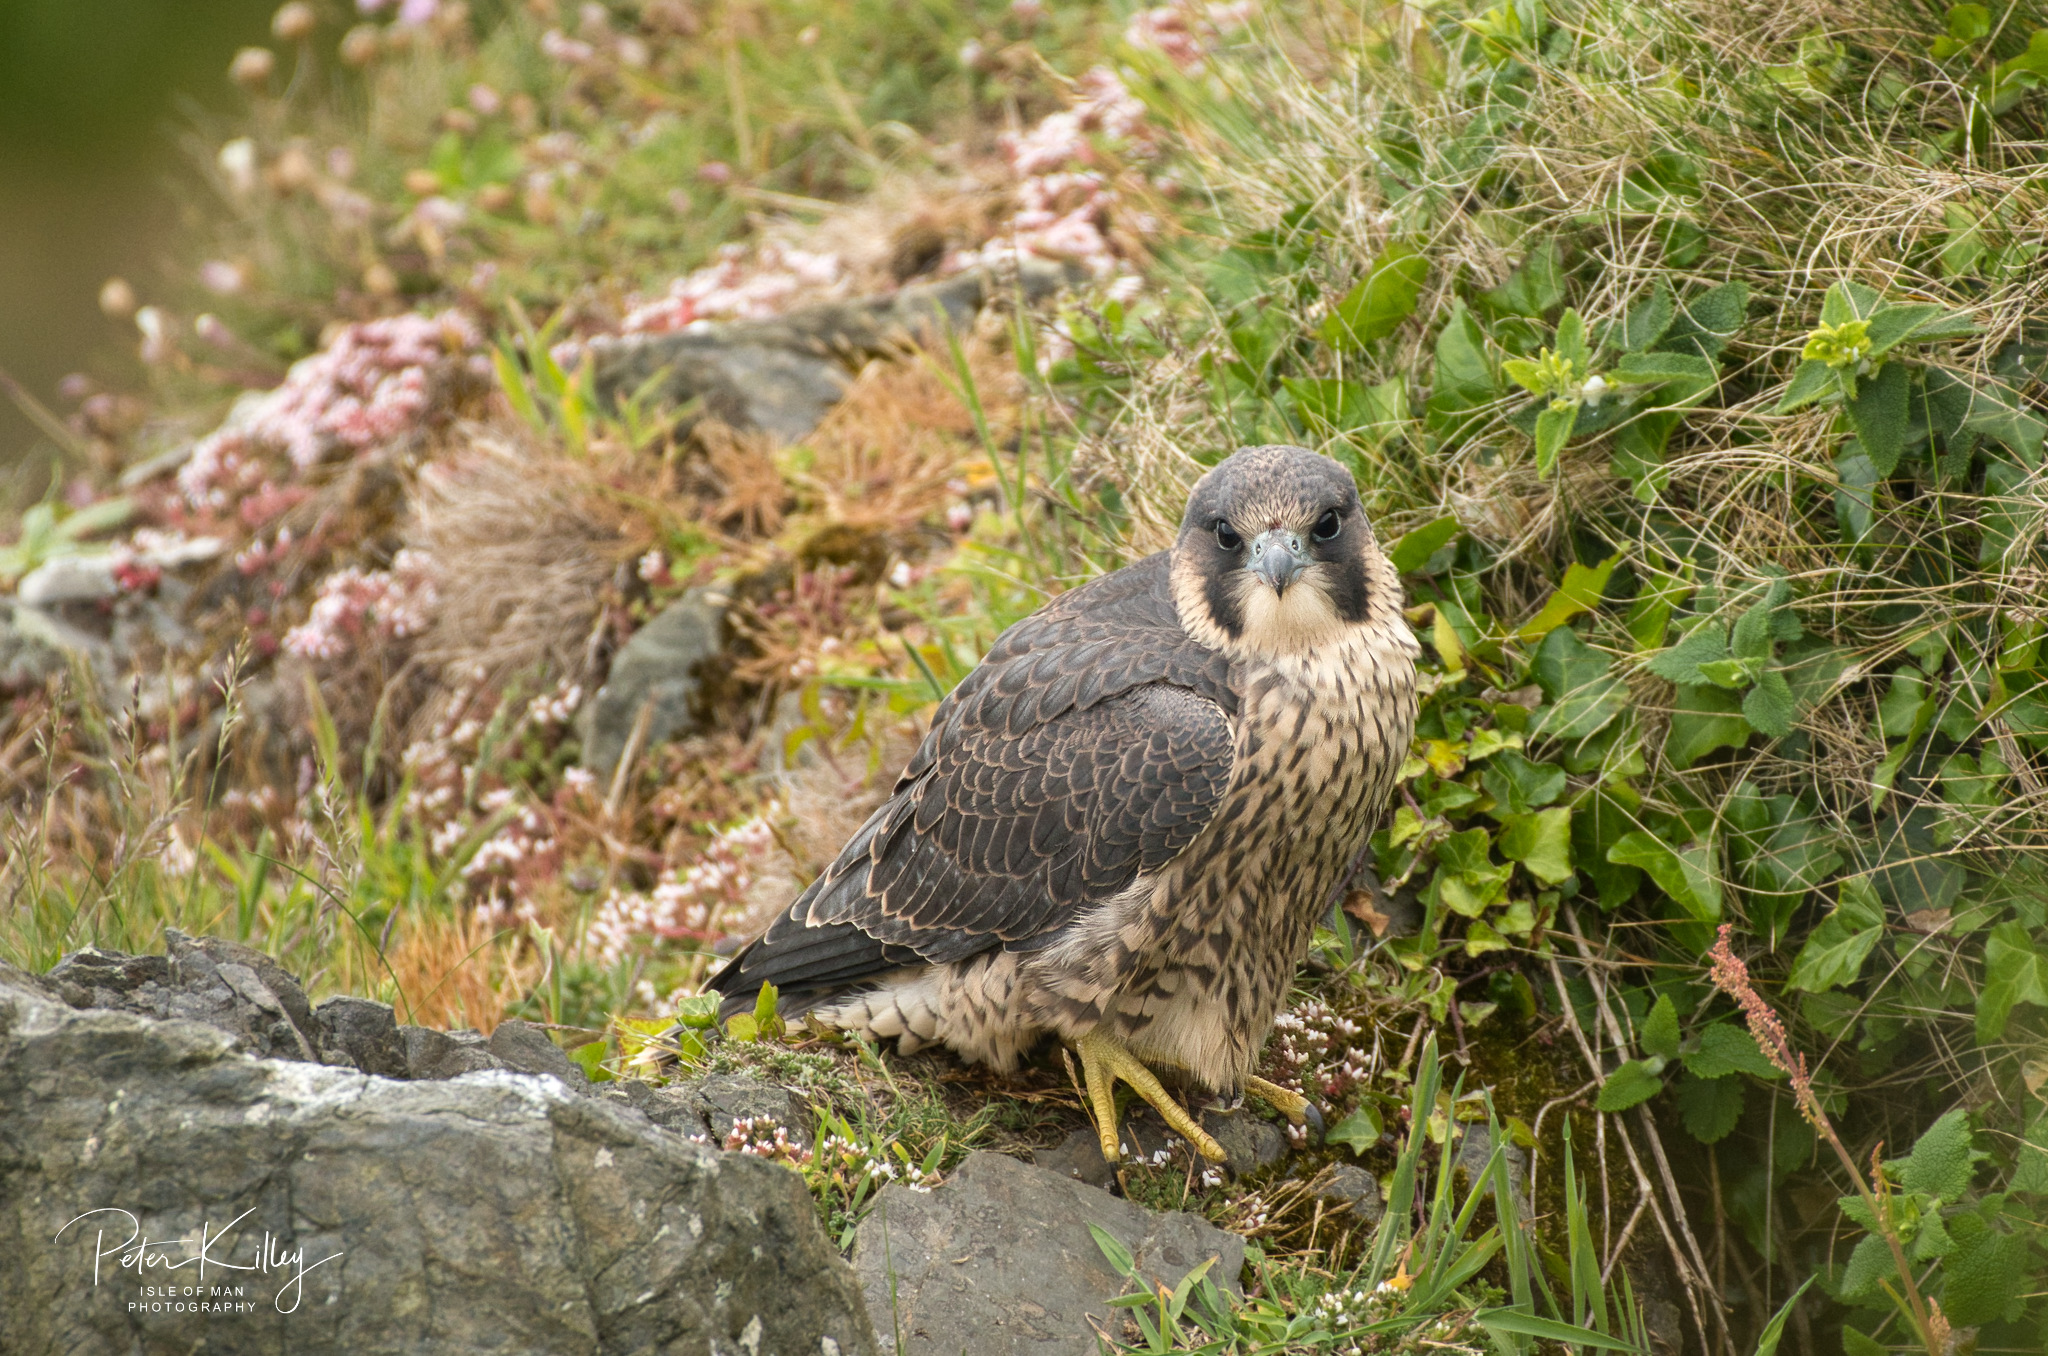 Juvenile Peregrine Falcon - © Peter Killey - www.manxscenes.com